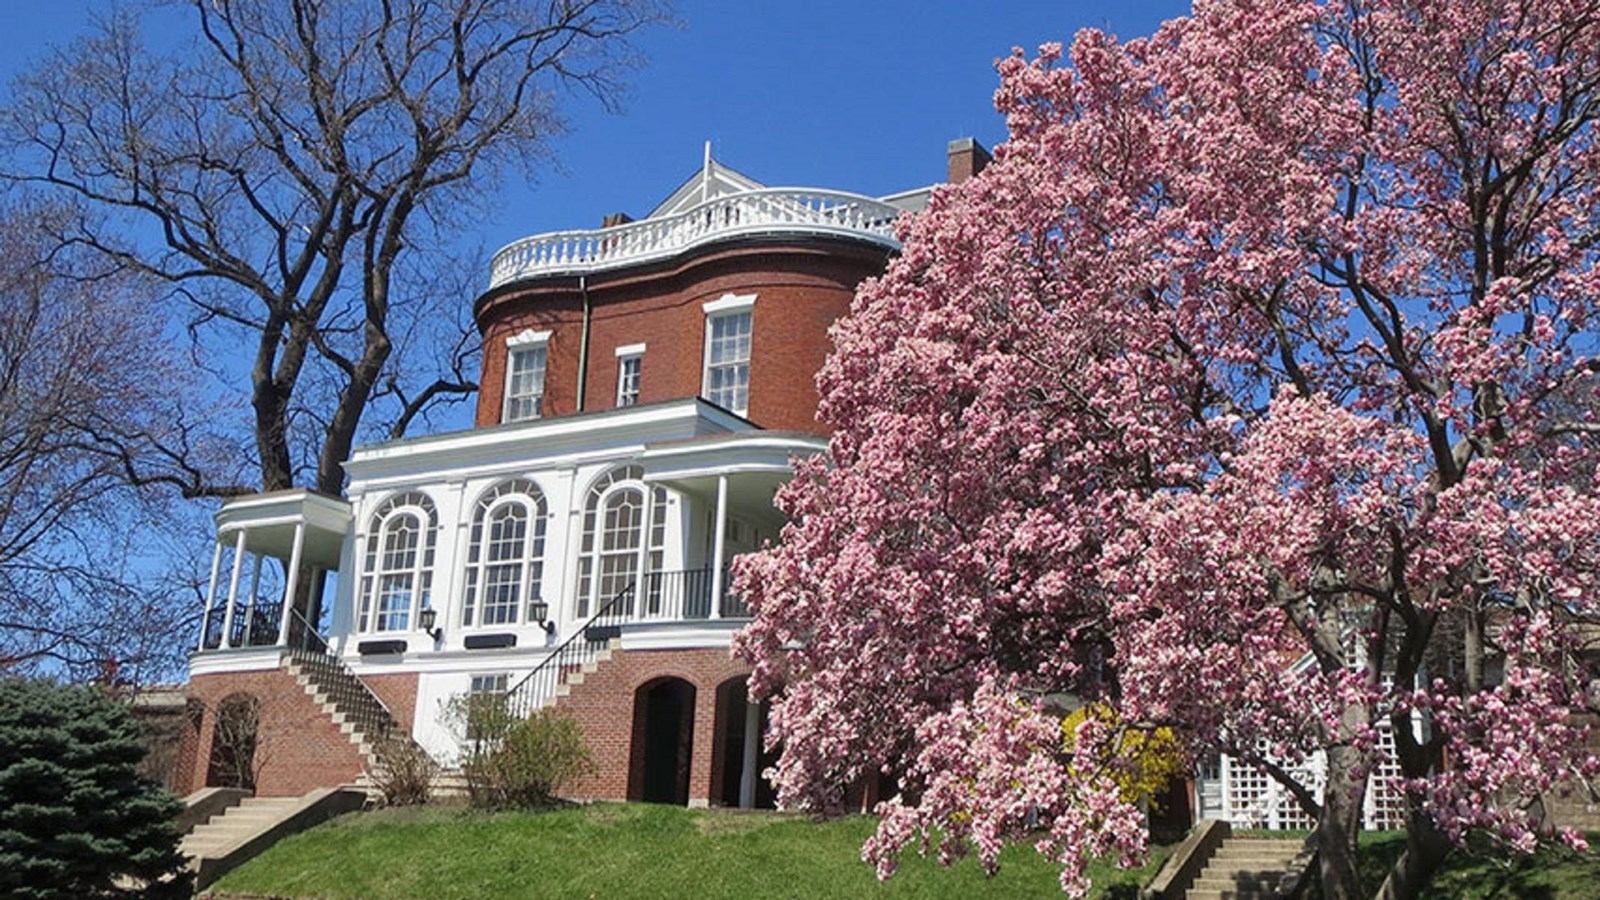 Commandant House, a red brick and white wood Federalist Style structure next to a blooming tree.